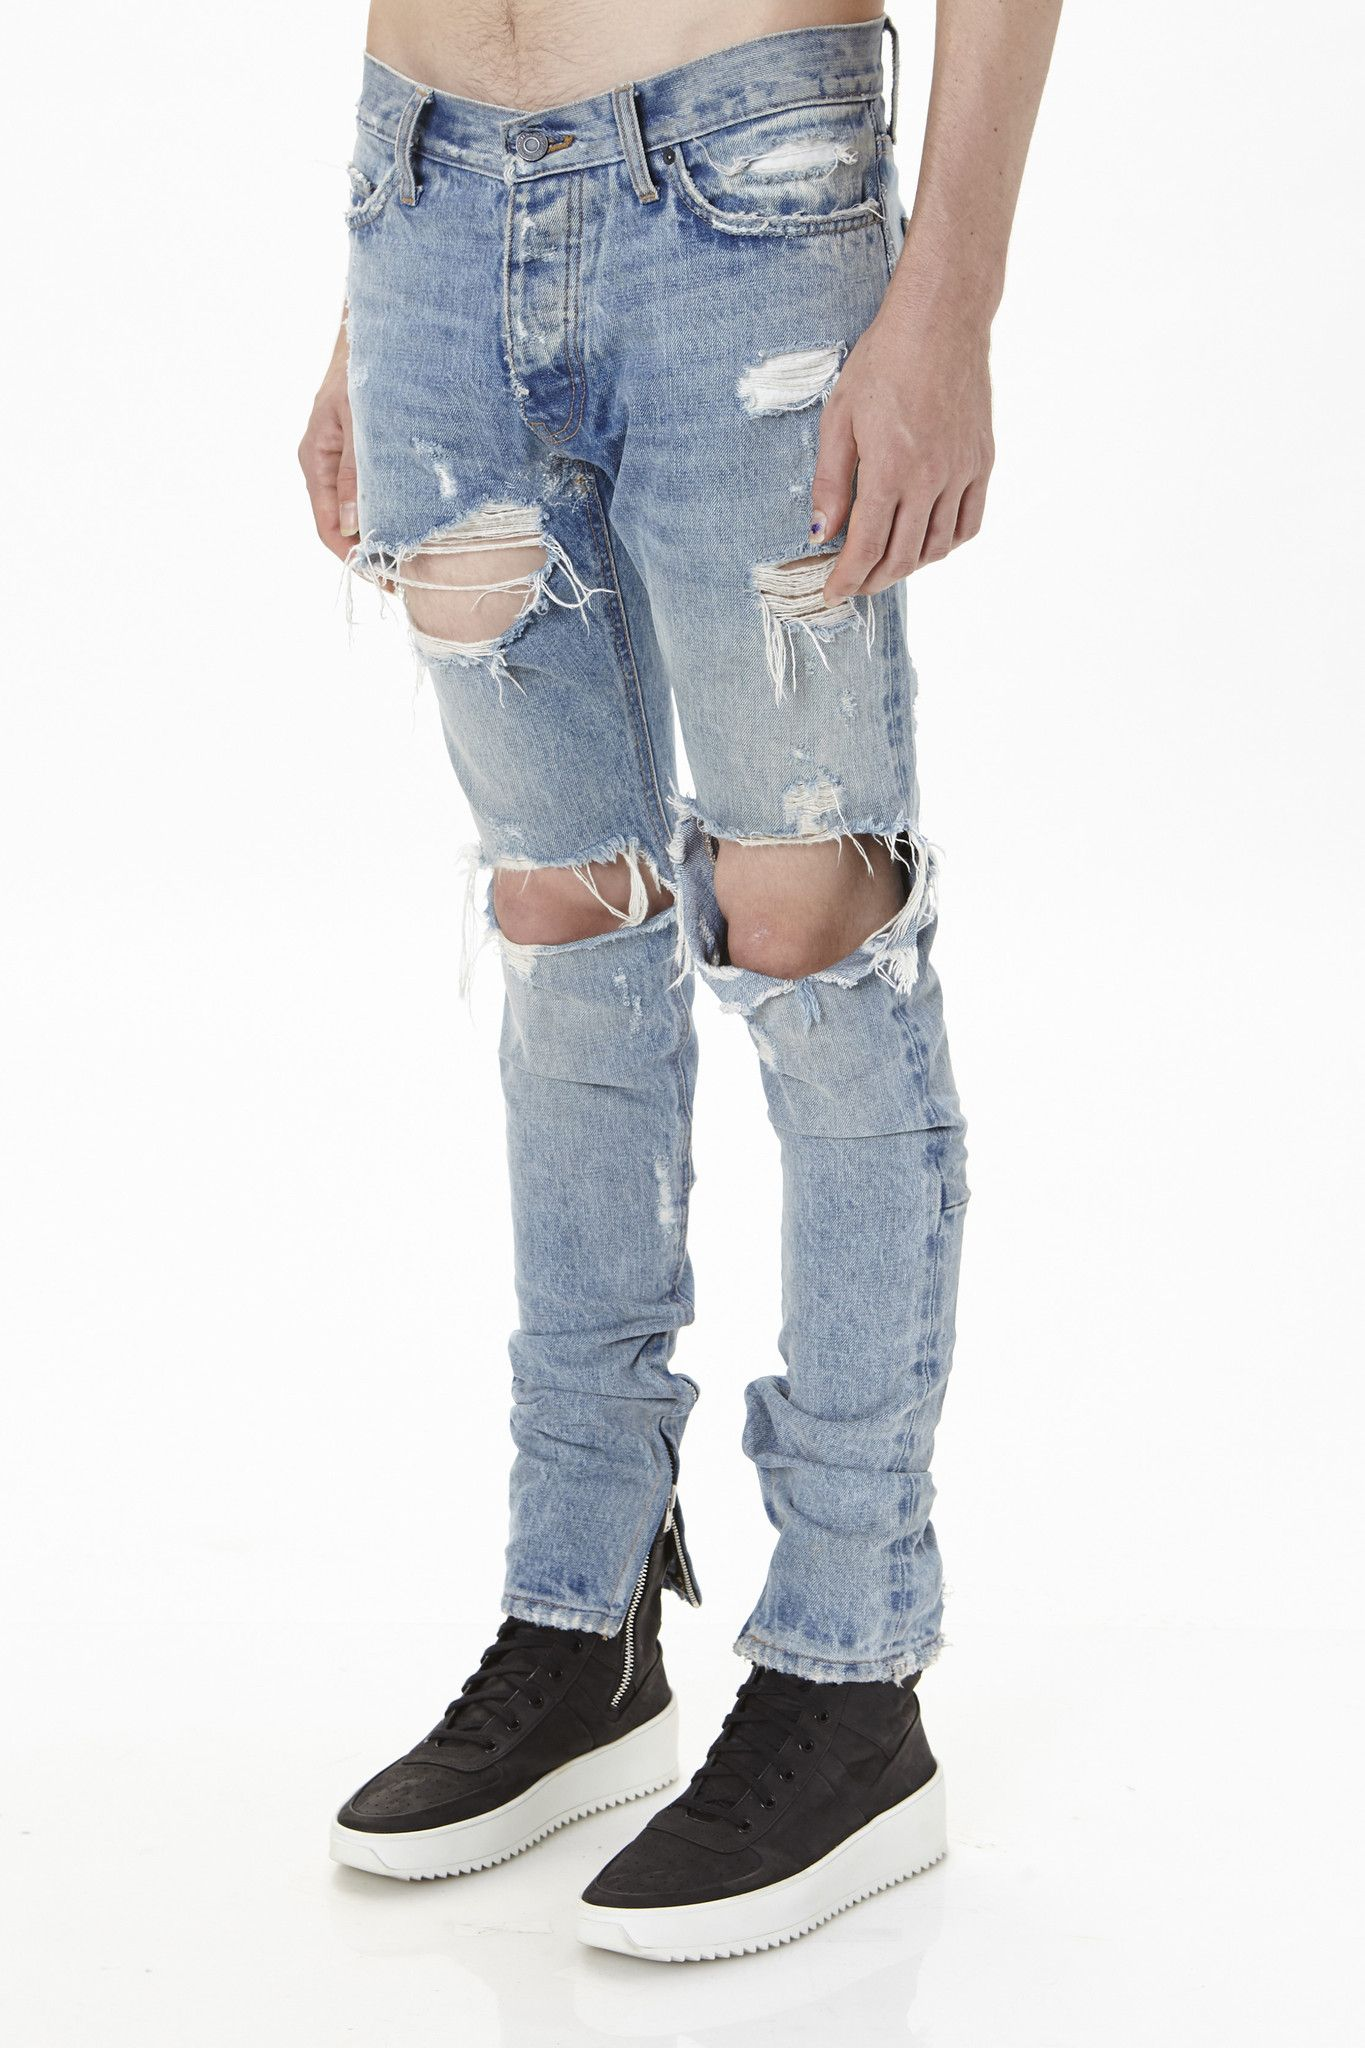 Alion Mens Classic Zipper Ripped Holes Destroyed Skinny Jeans Pants